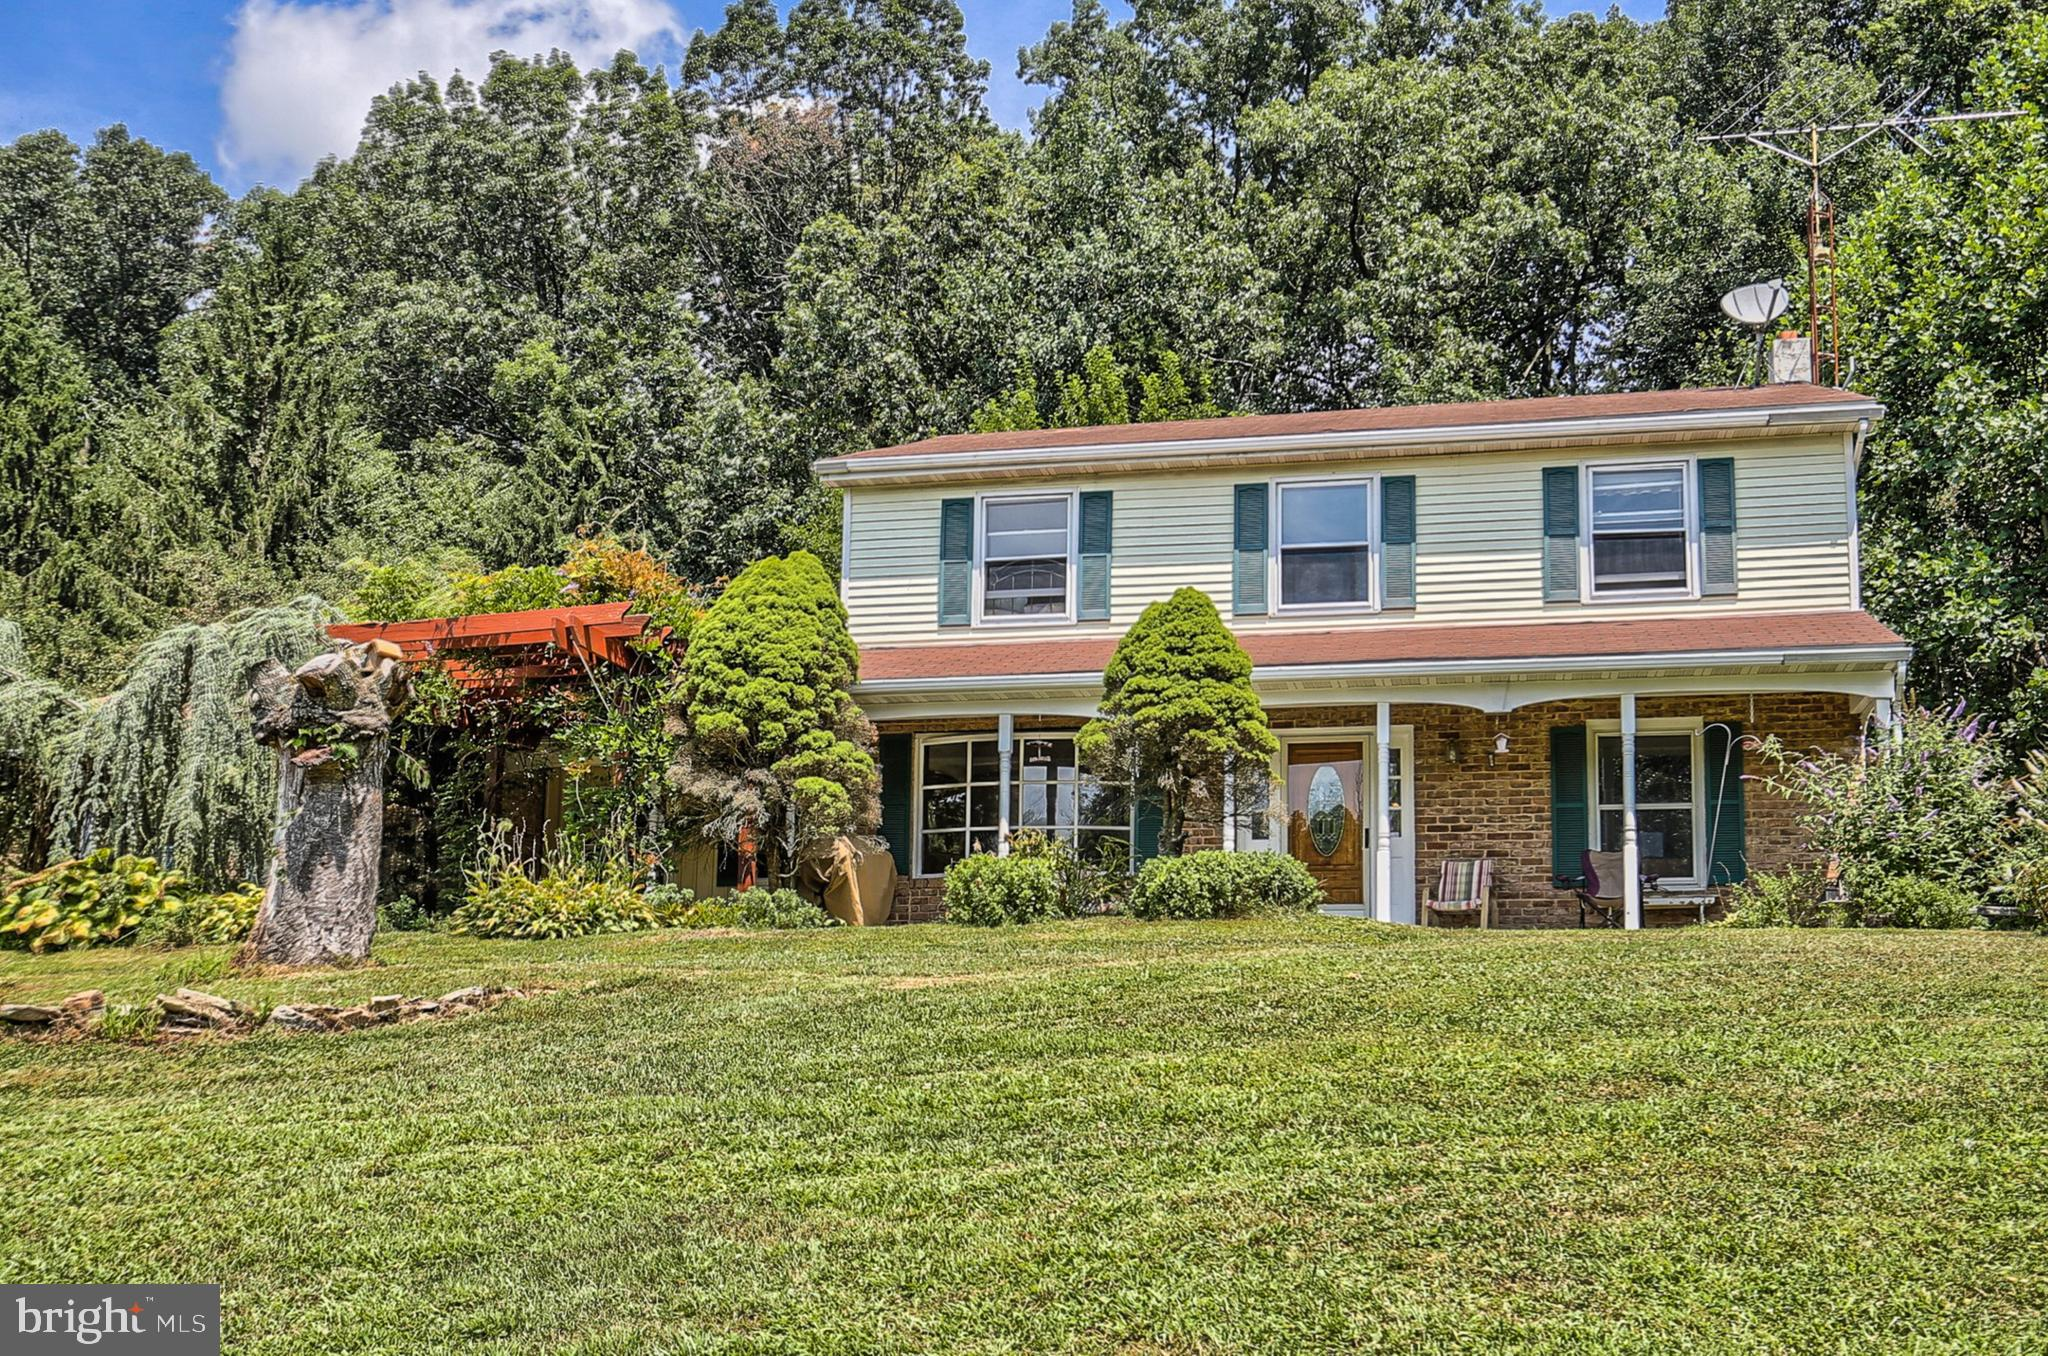 135 HOLLOW ROAD, YORK SPRINGS, PA 17372